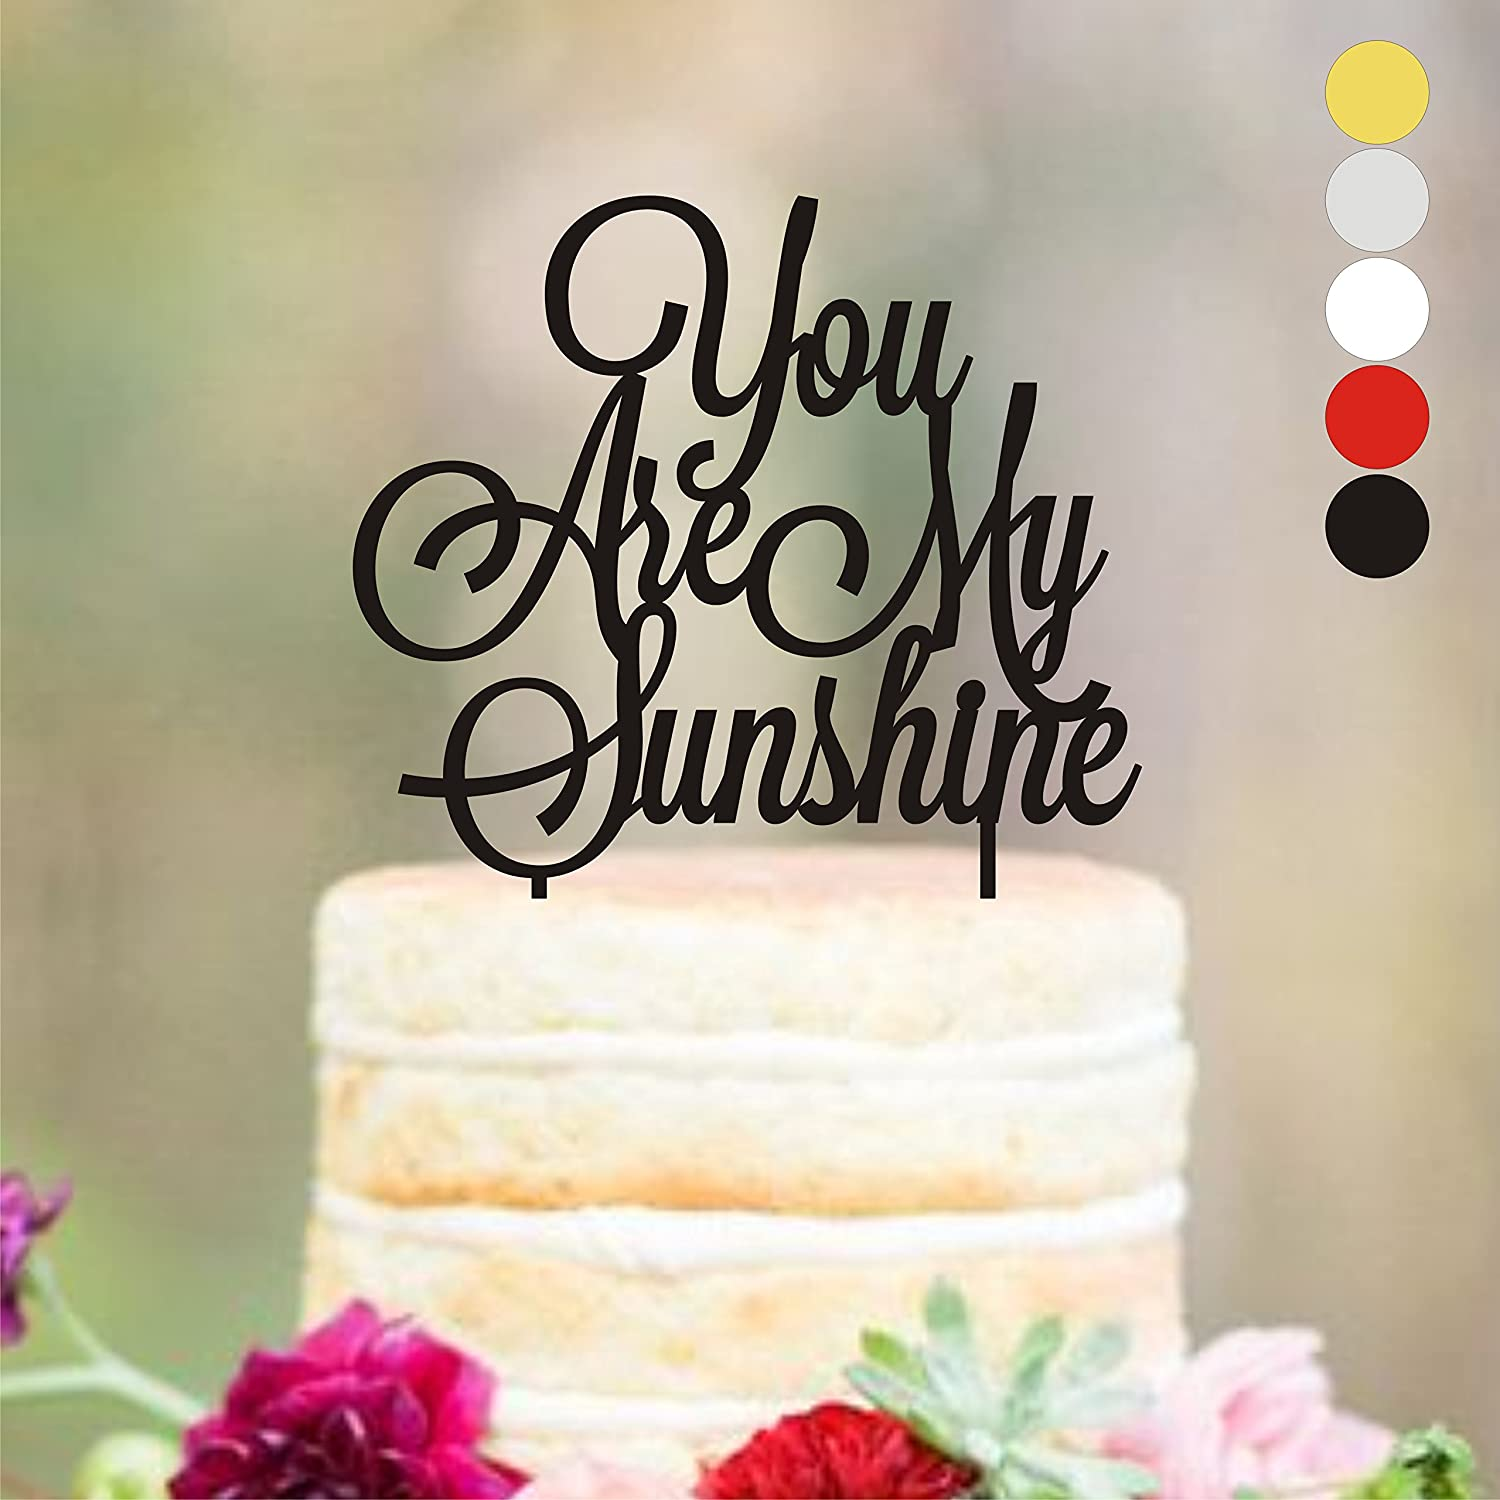 You Are My Sunshine Cake Topper Sunflower Baby Shower Cake Topper